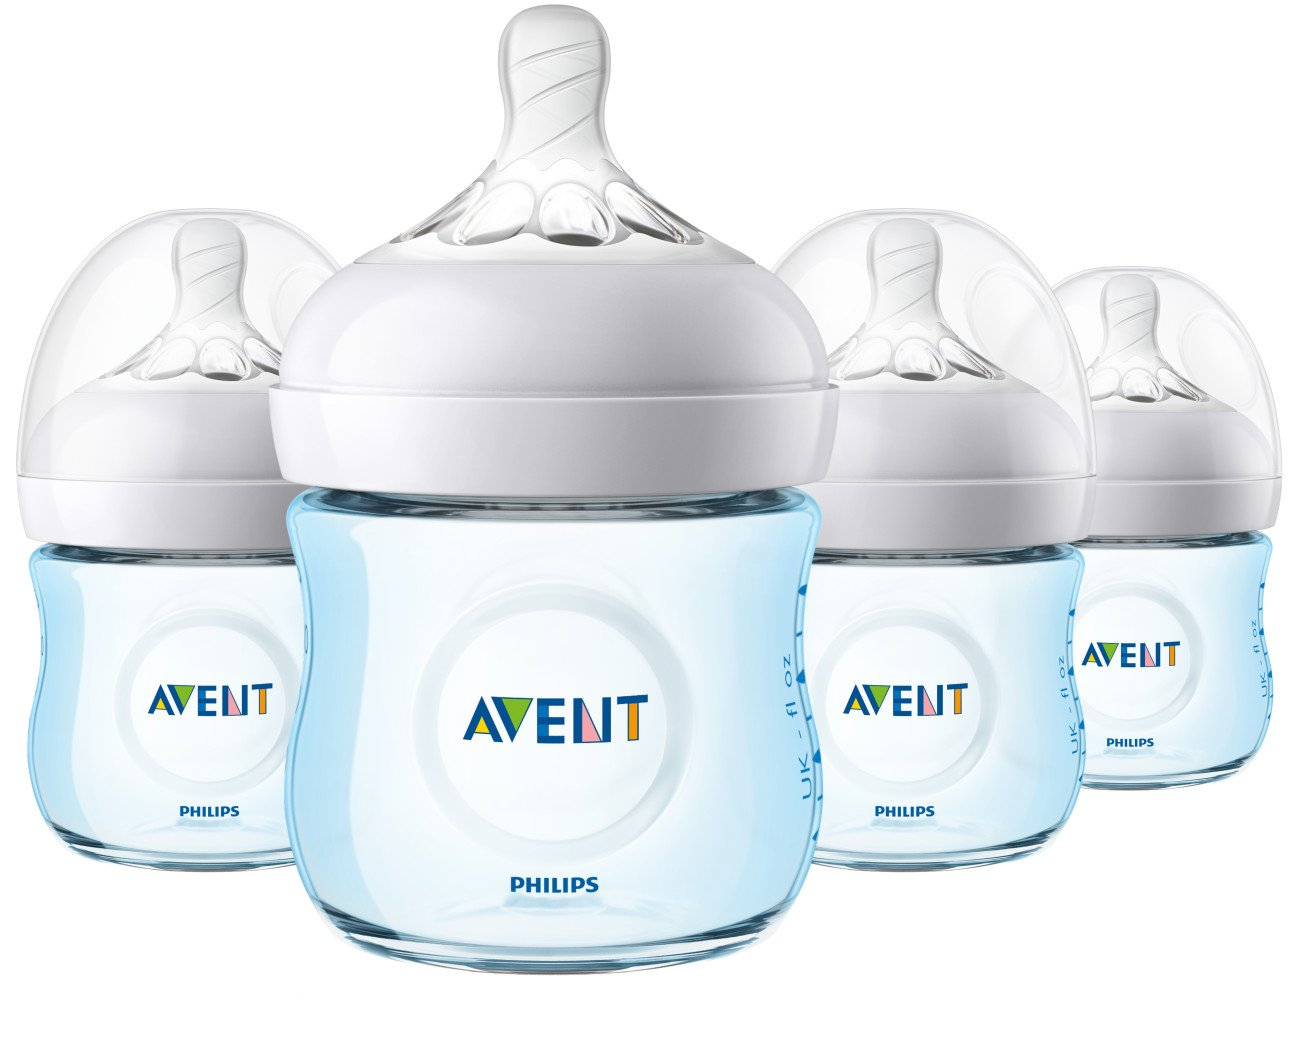 Philips Avent Natural Baby Bottle, Blue, 4oz, 4pk, SCF010/49 by Philips AVENT